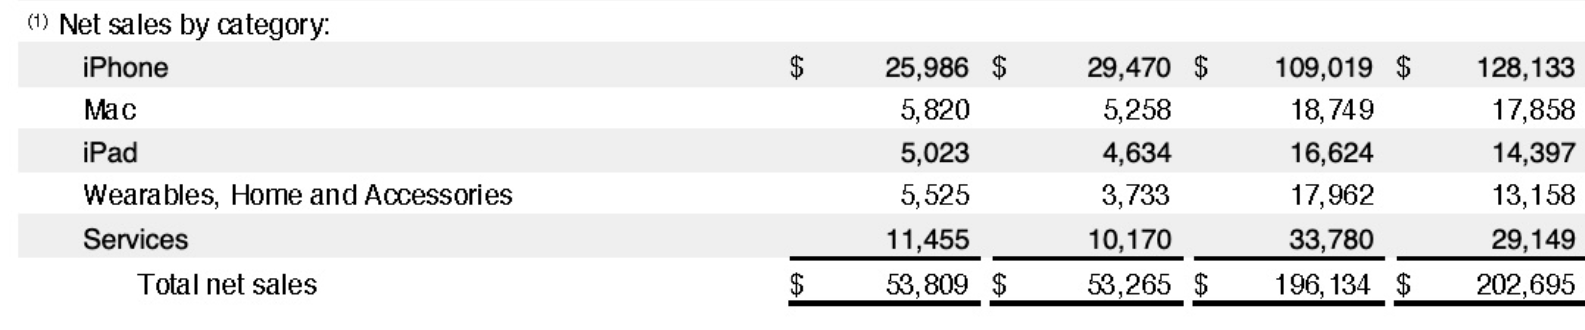 Apple Q3 2019 Earnings Results Img 1